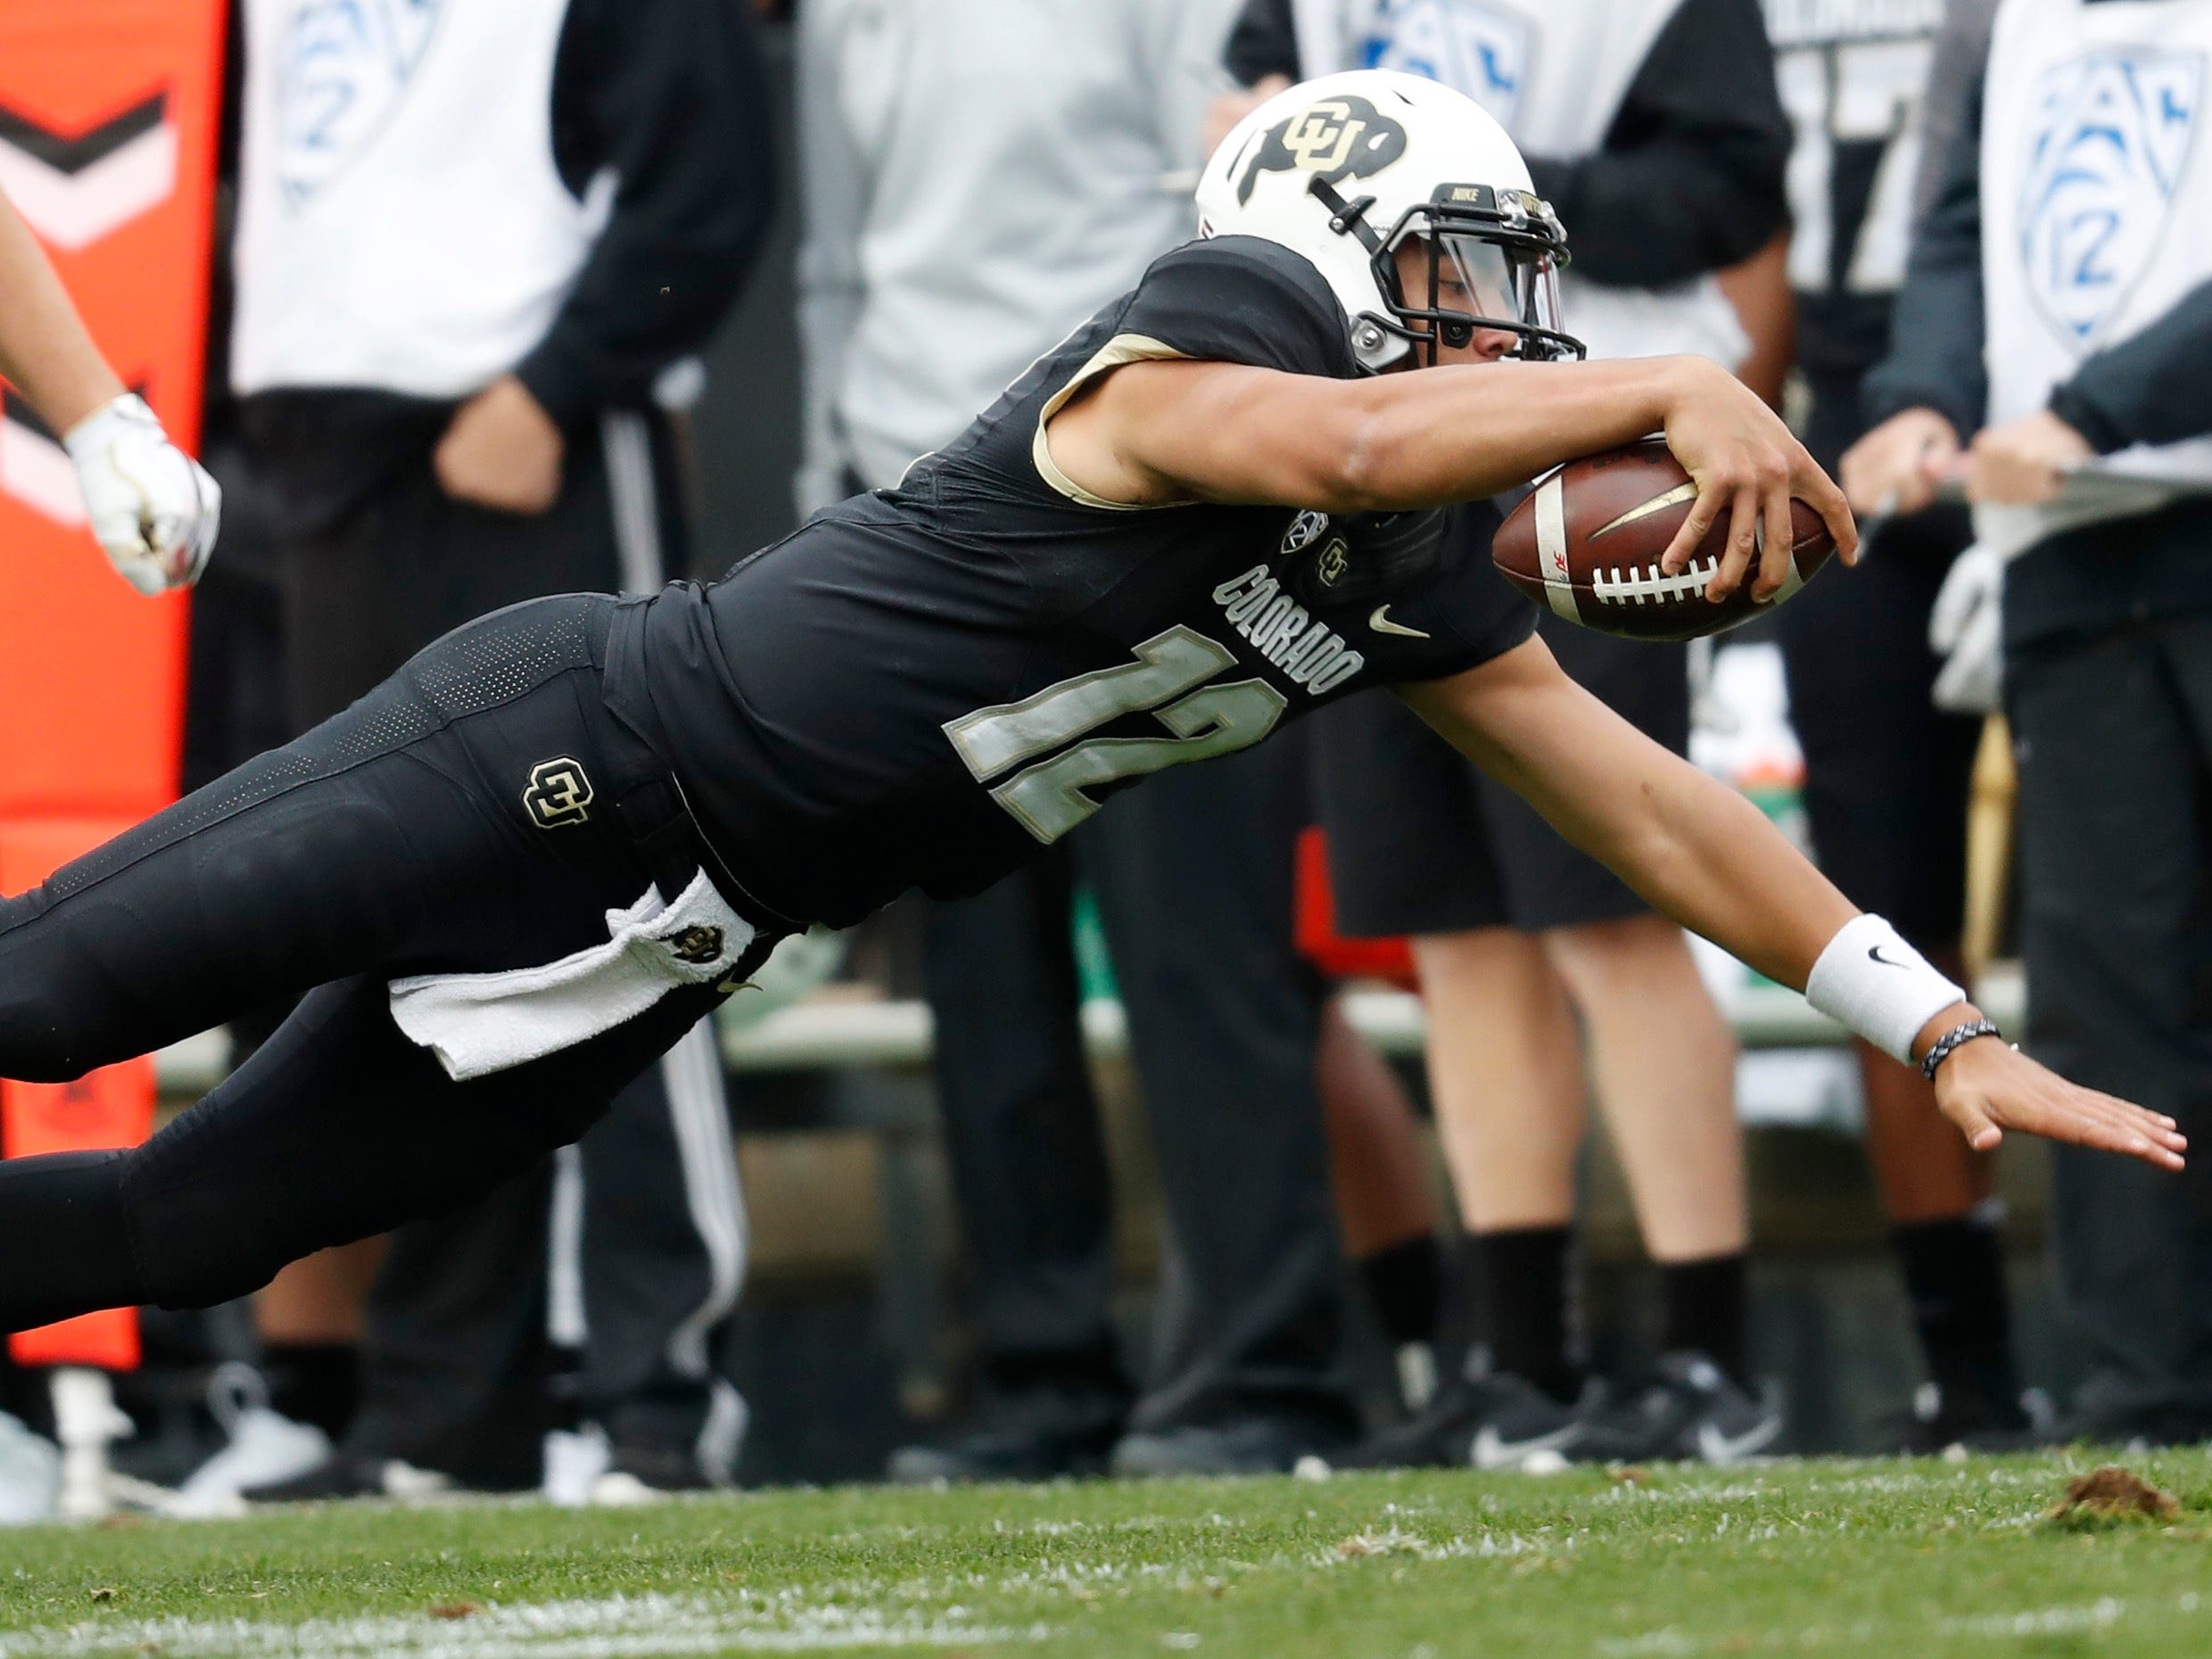 Colorado quarterback Steven Montez dives for yardage after getting tripped up while running against Arizona State in the second half of an NCAA college football game Saturday, Oct. 6, 2018, in Boulder, Colo. Colorado won 28-21. (AP Photo/David Zalubowski)